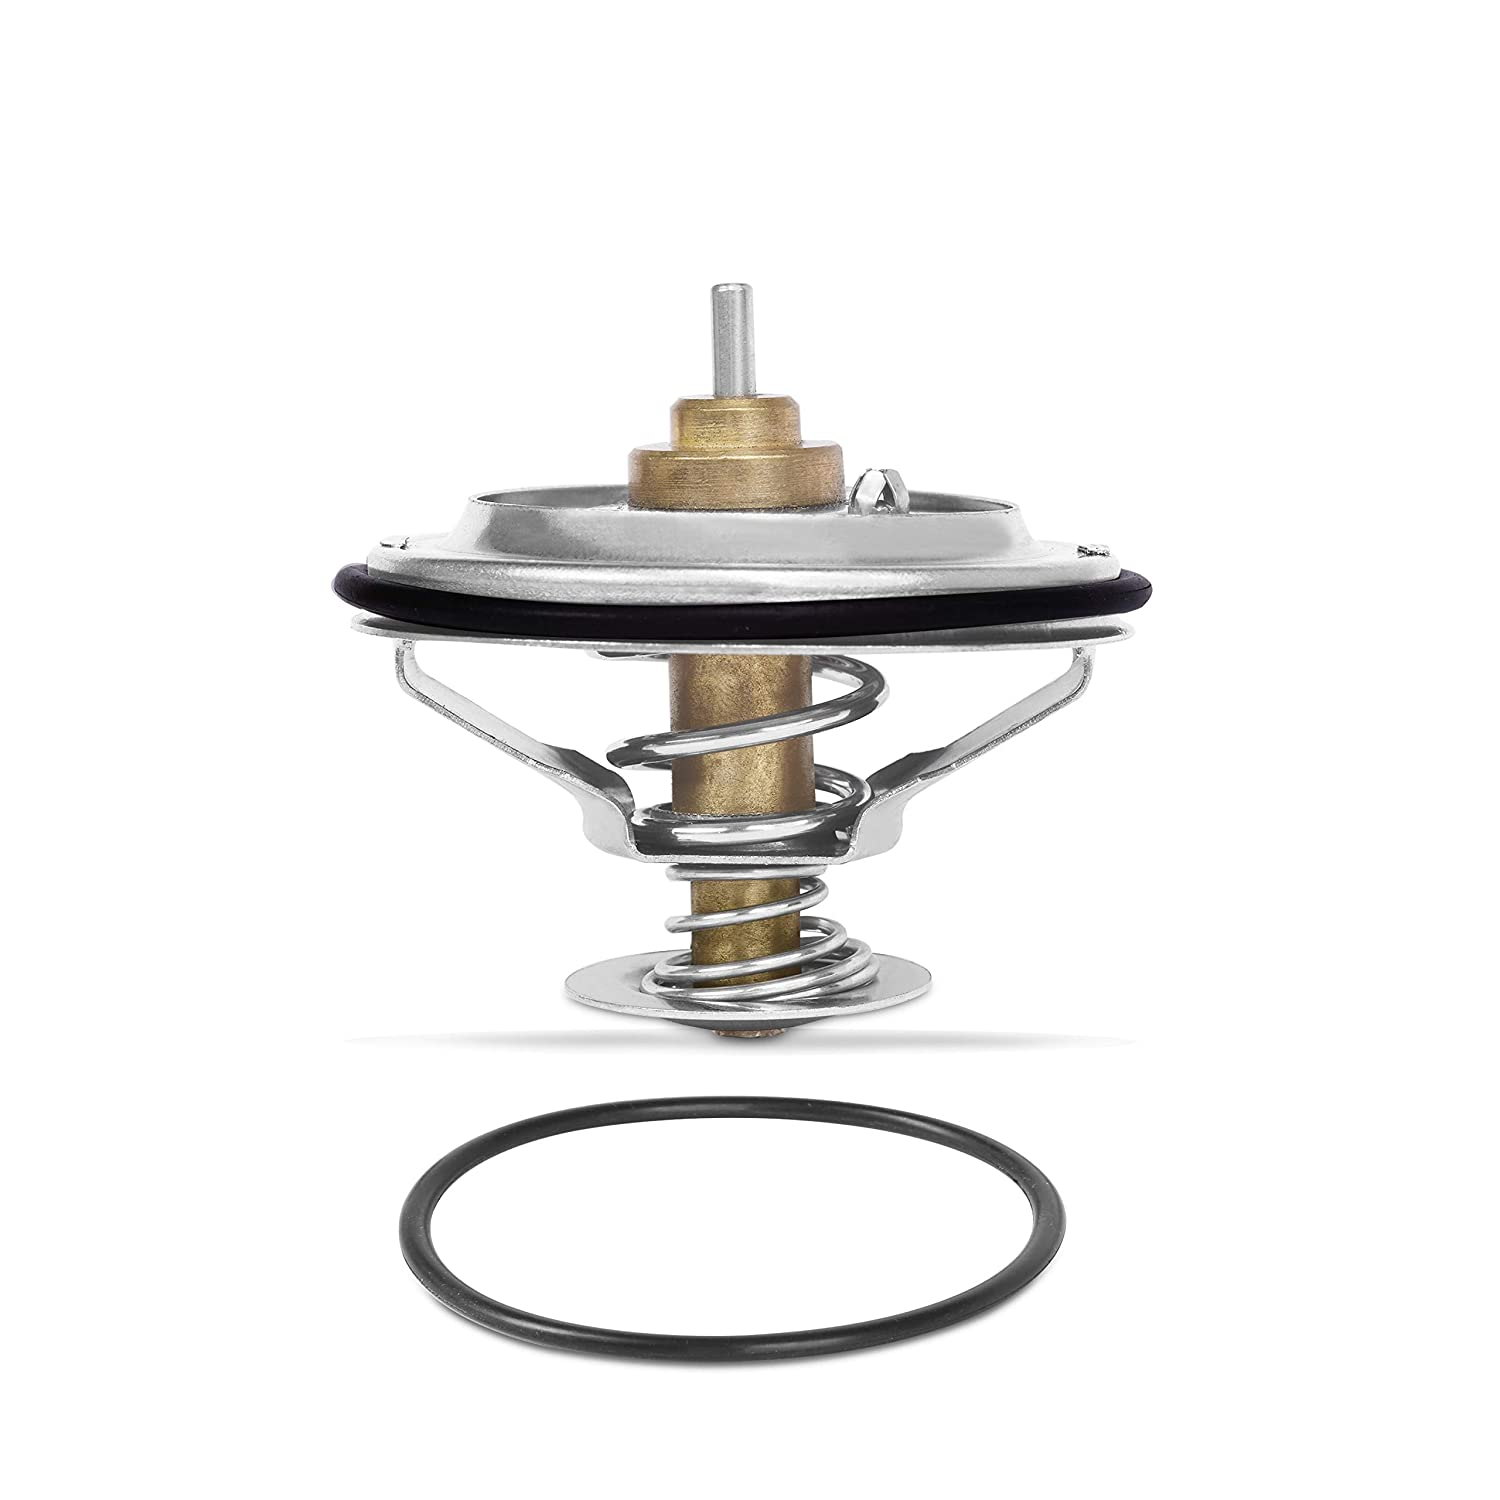 Mishimoto MMTS-E90-07 BMW N52, N54, N55 Engines Racing Thermostat